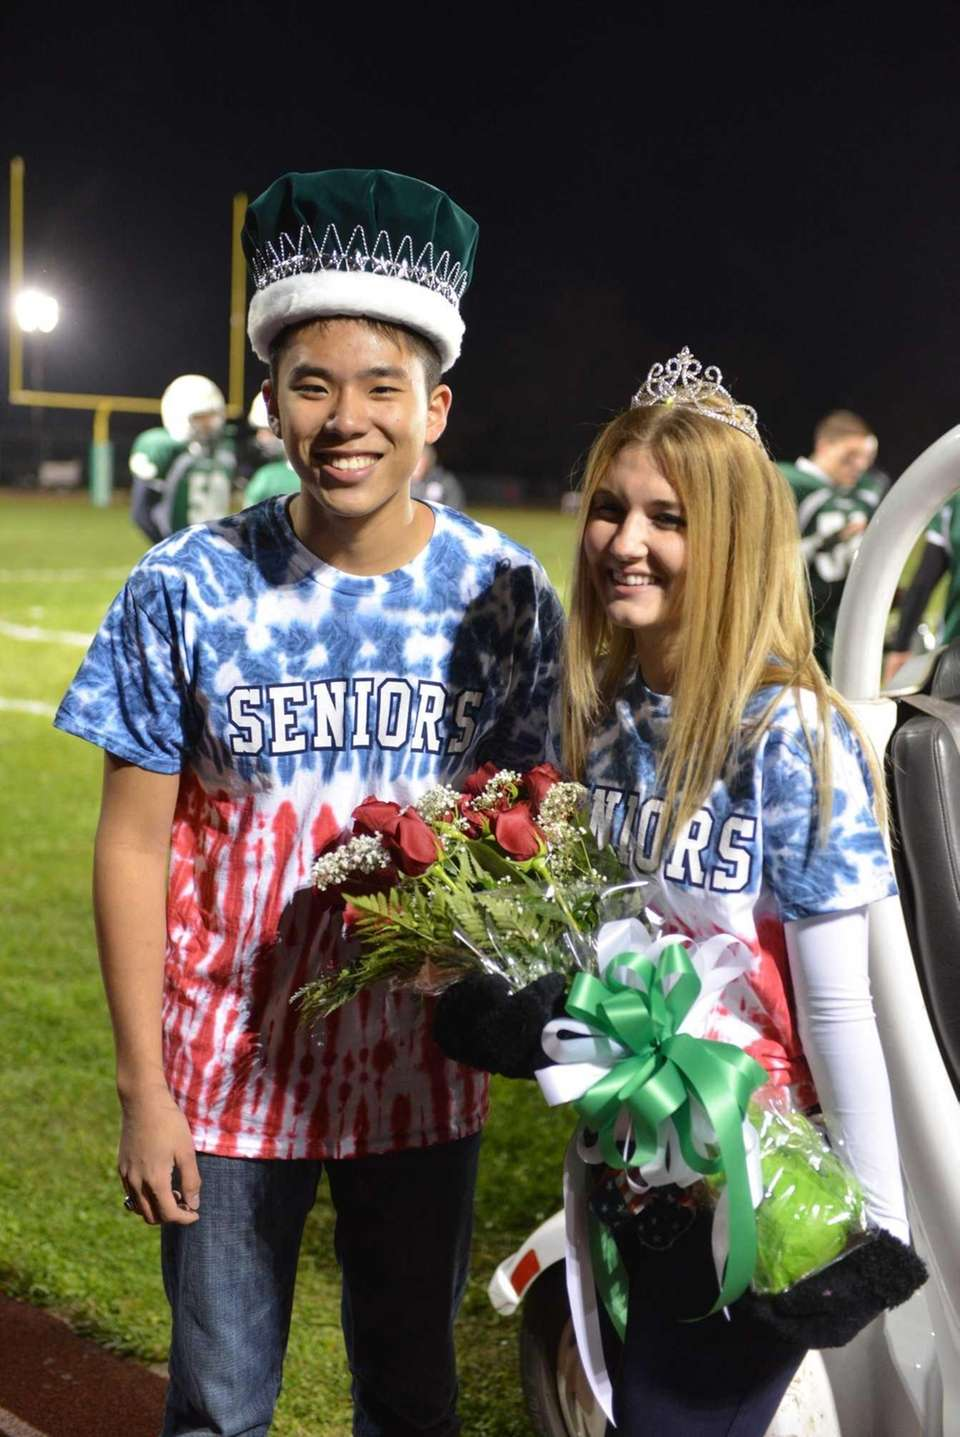 Seniors Timothy Leung and Anjelica Pisacone were crowned